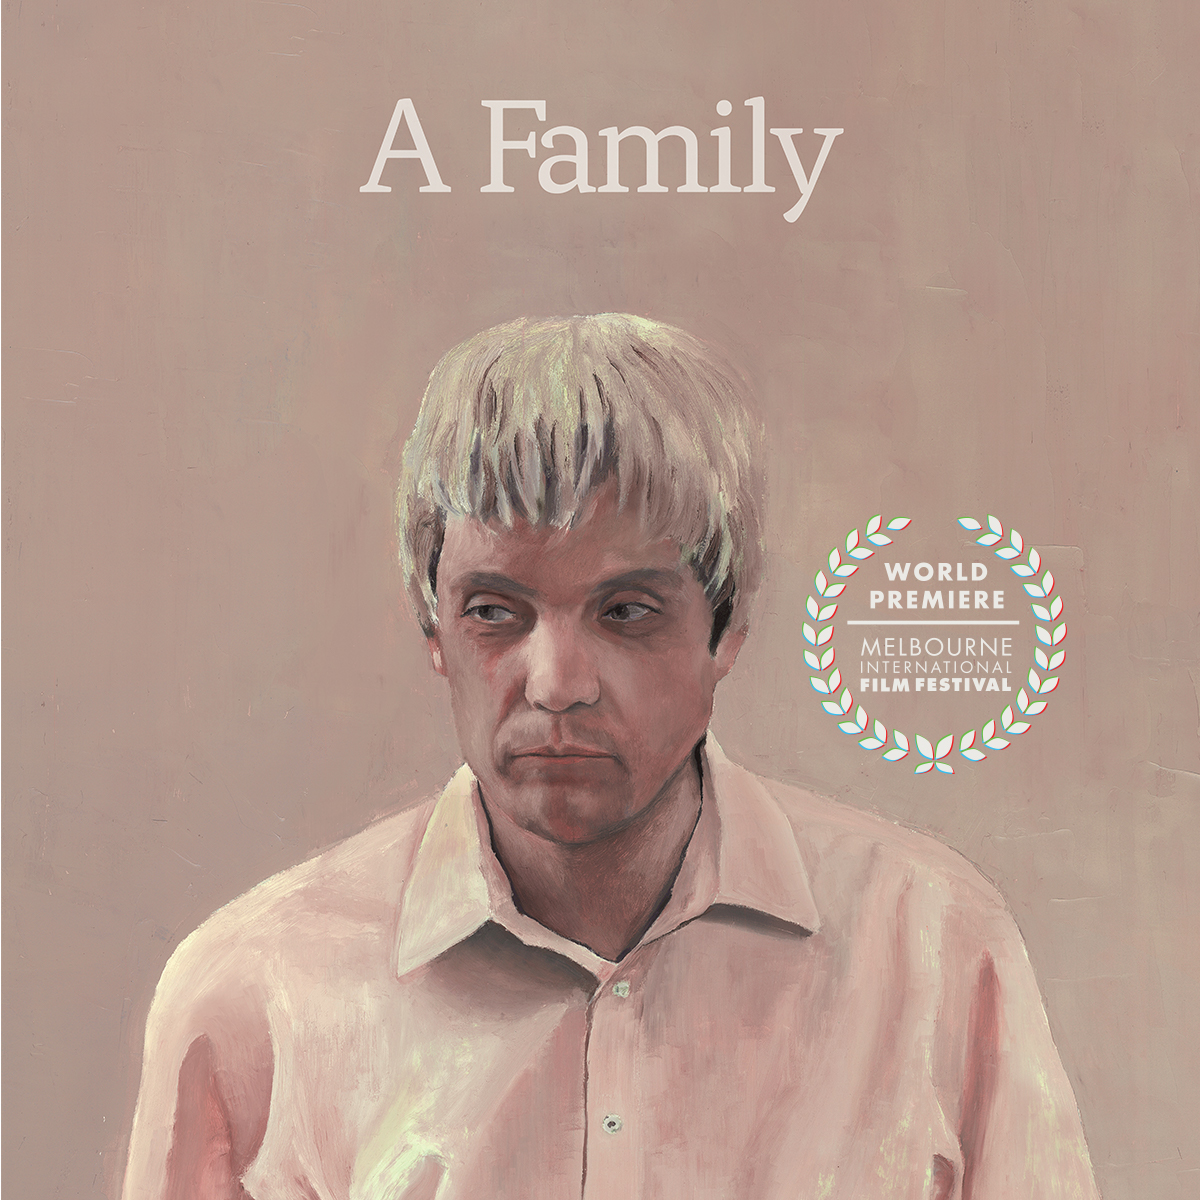 A Family (2019) - Australia/Ukraine, 93minsDirector: Jayden StevensWriters: Tom Swinburn and Jayden StevensProducers: Clea Frost, Olga Mykhalets, Tom Swinburn and Jayden Stevens